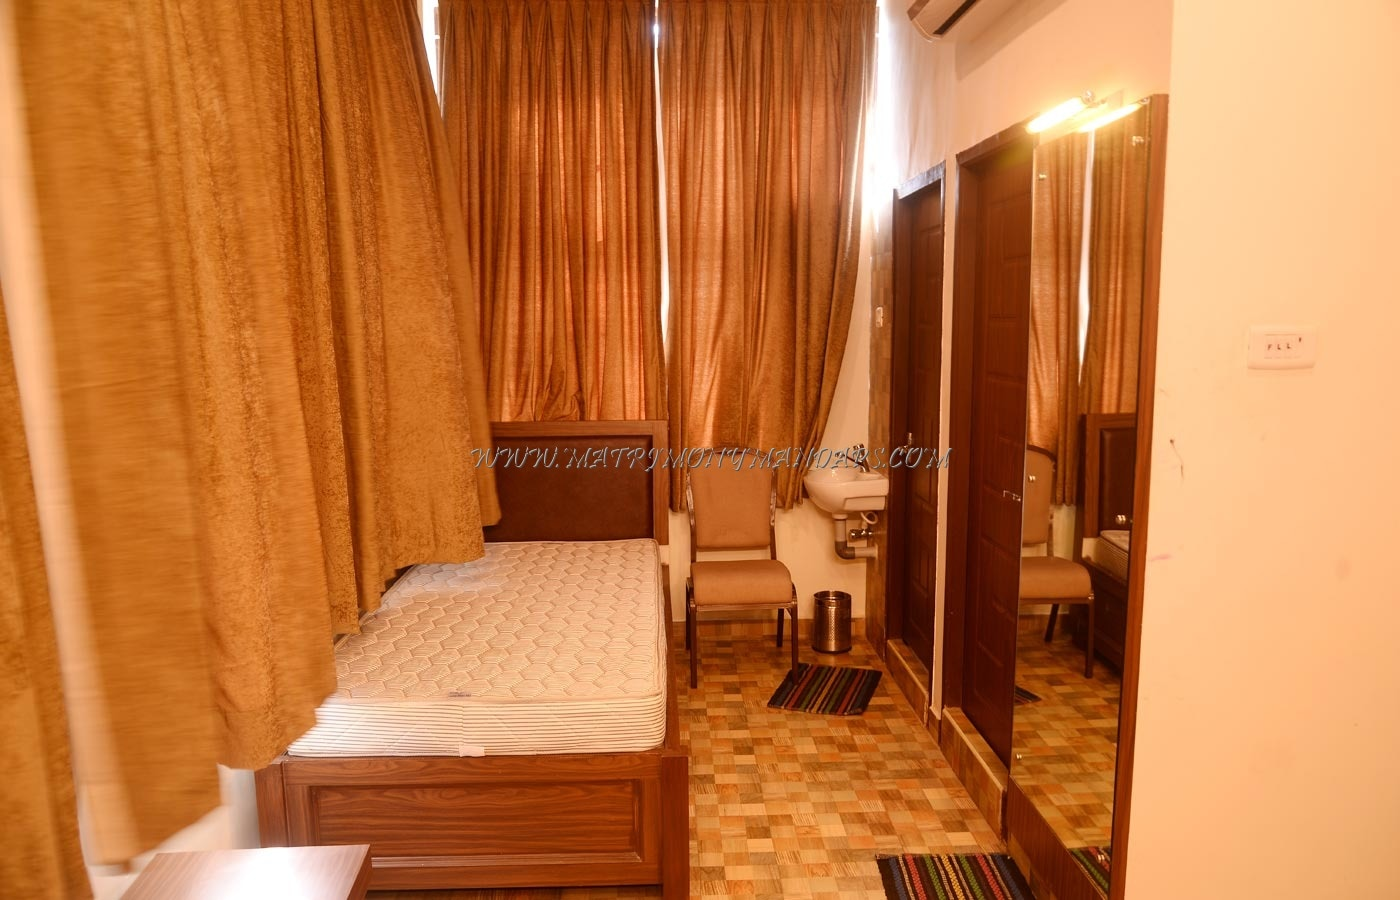 Ramavadivu Convention Centre - Rooms